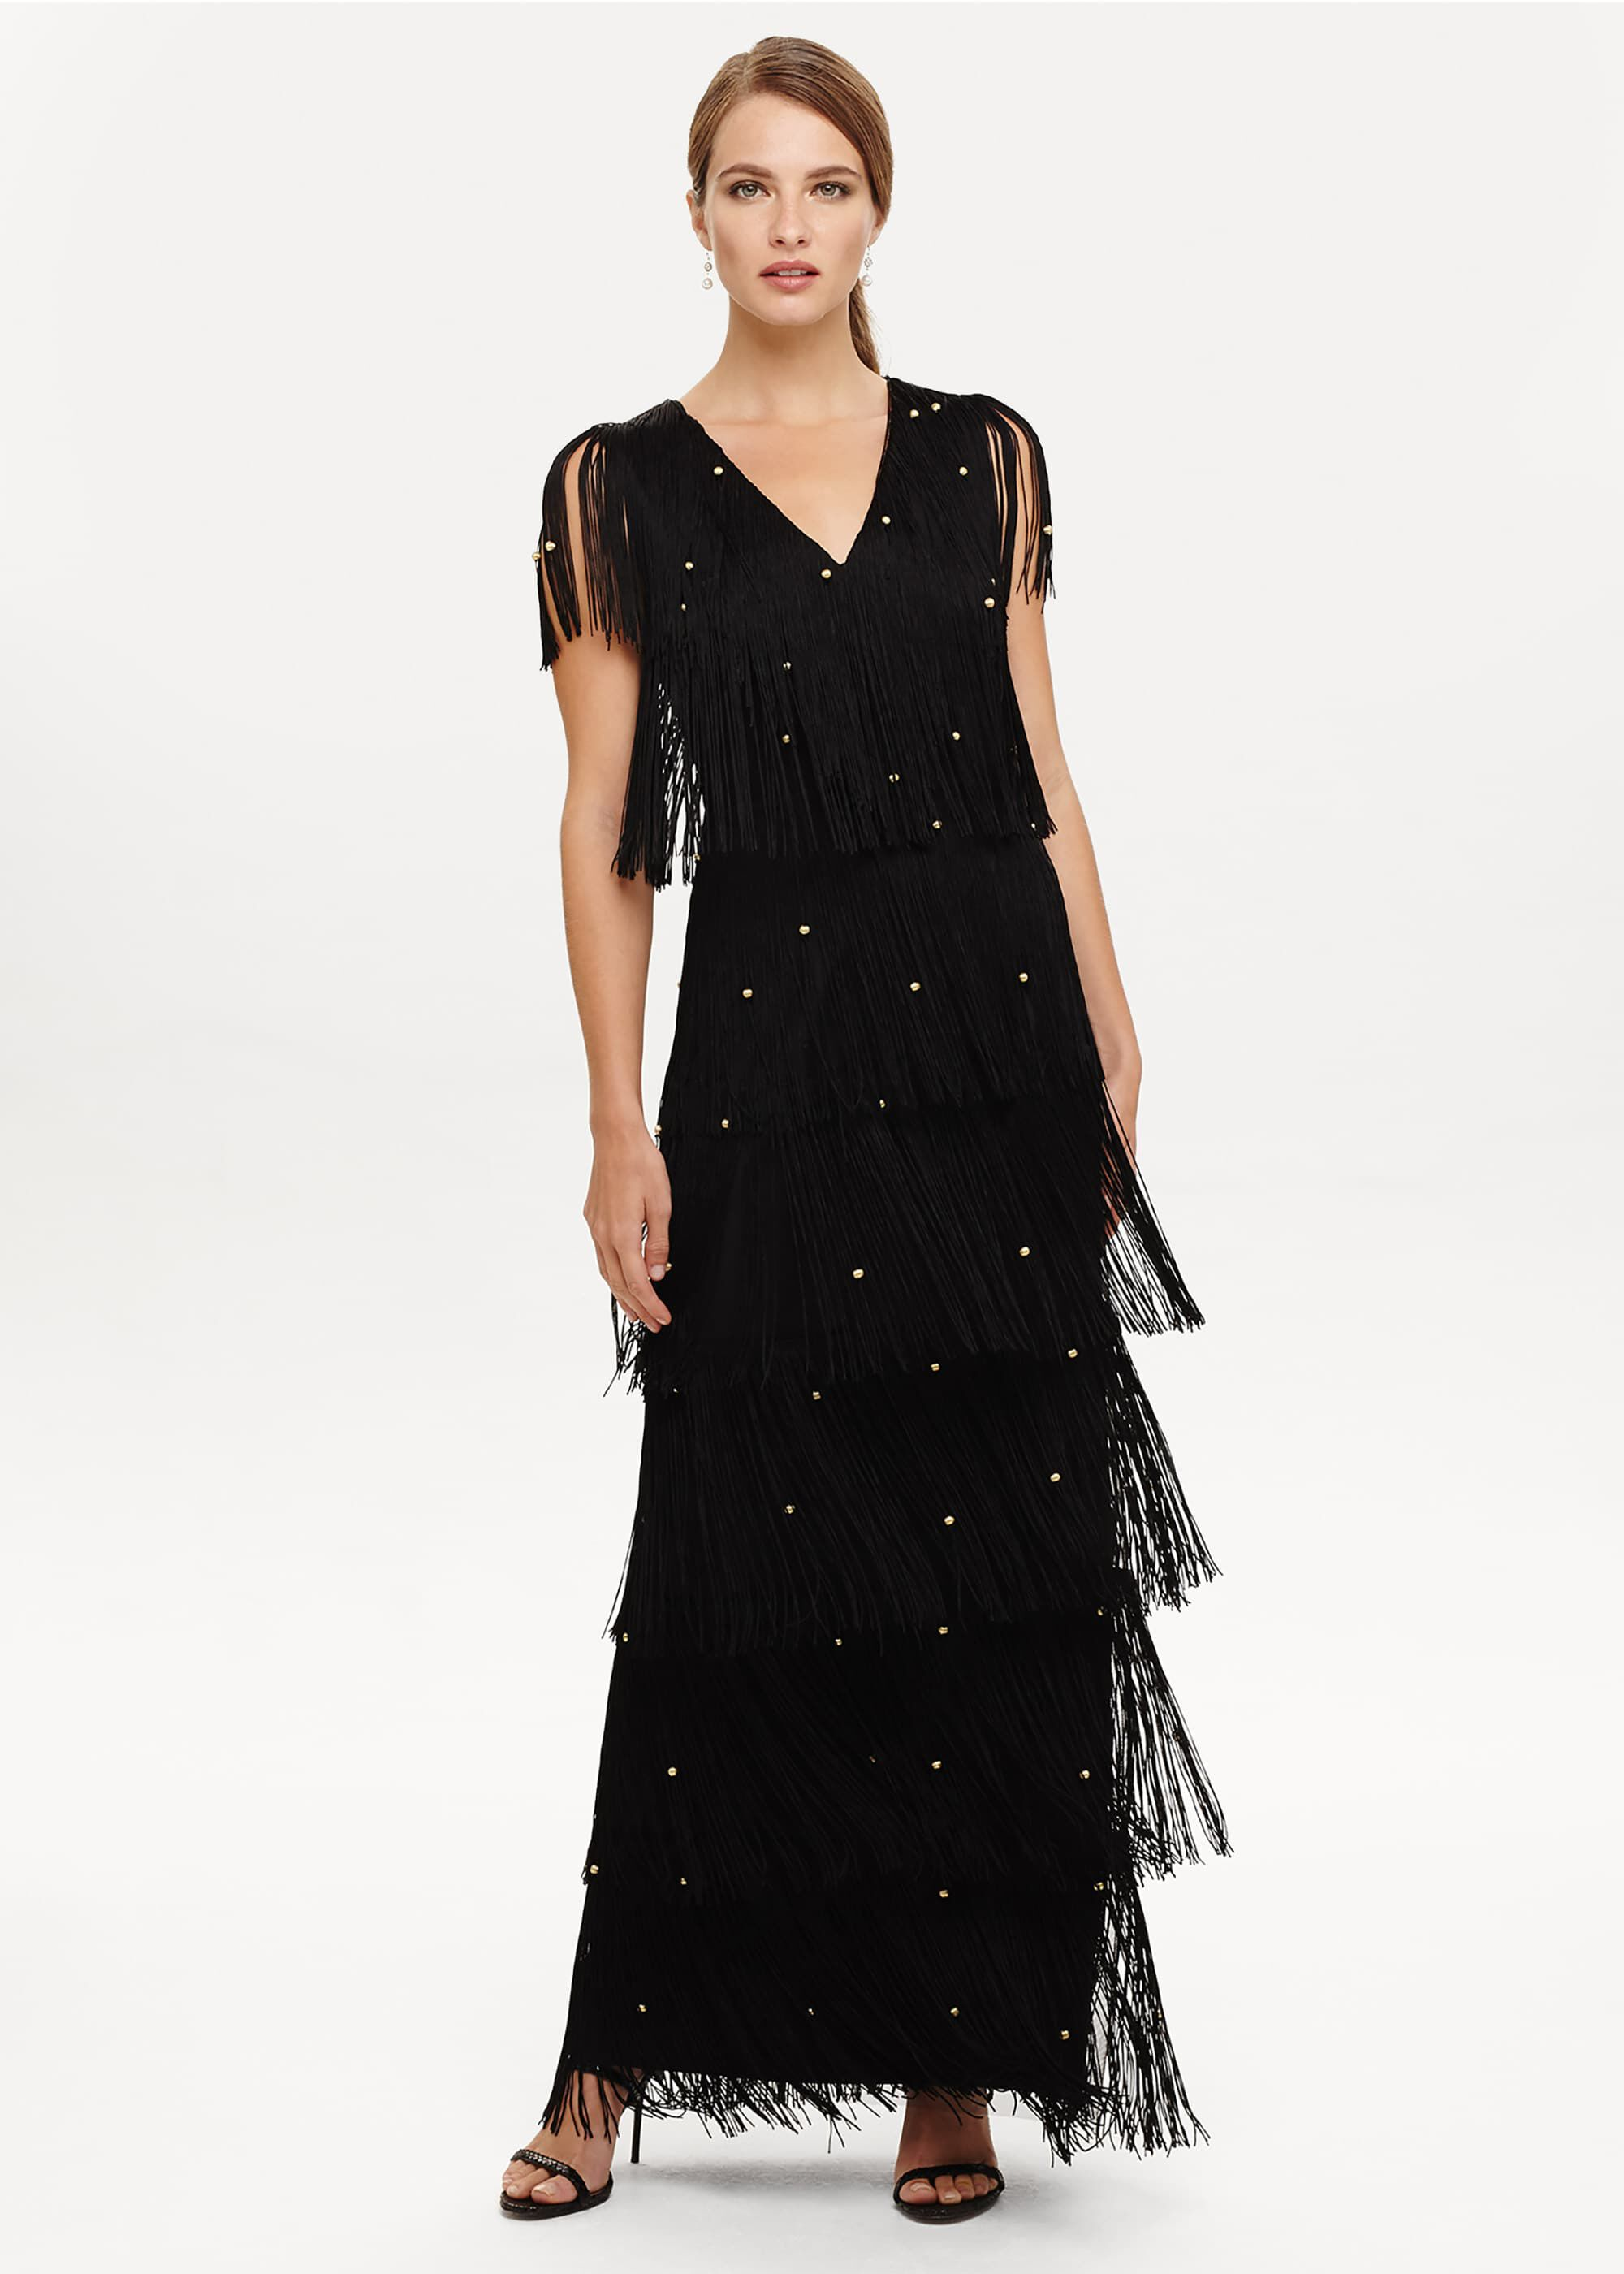 Vintage Inspired Dresses & Clothing UK Phase Eight Kandice Fringe Dress Black Maxi Occasion Dress £143.20 AT vintagedancer.com